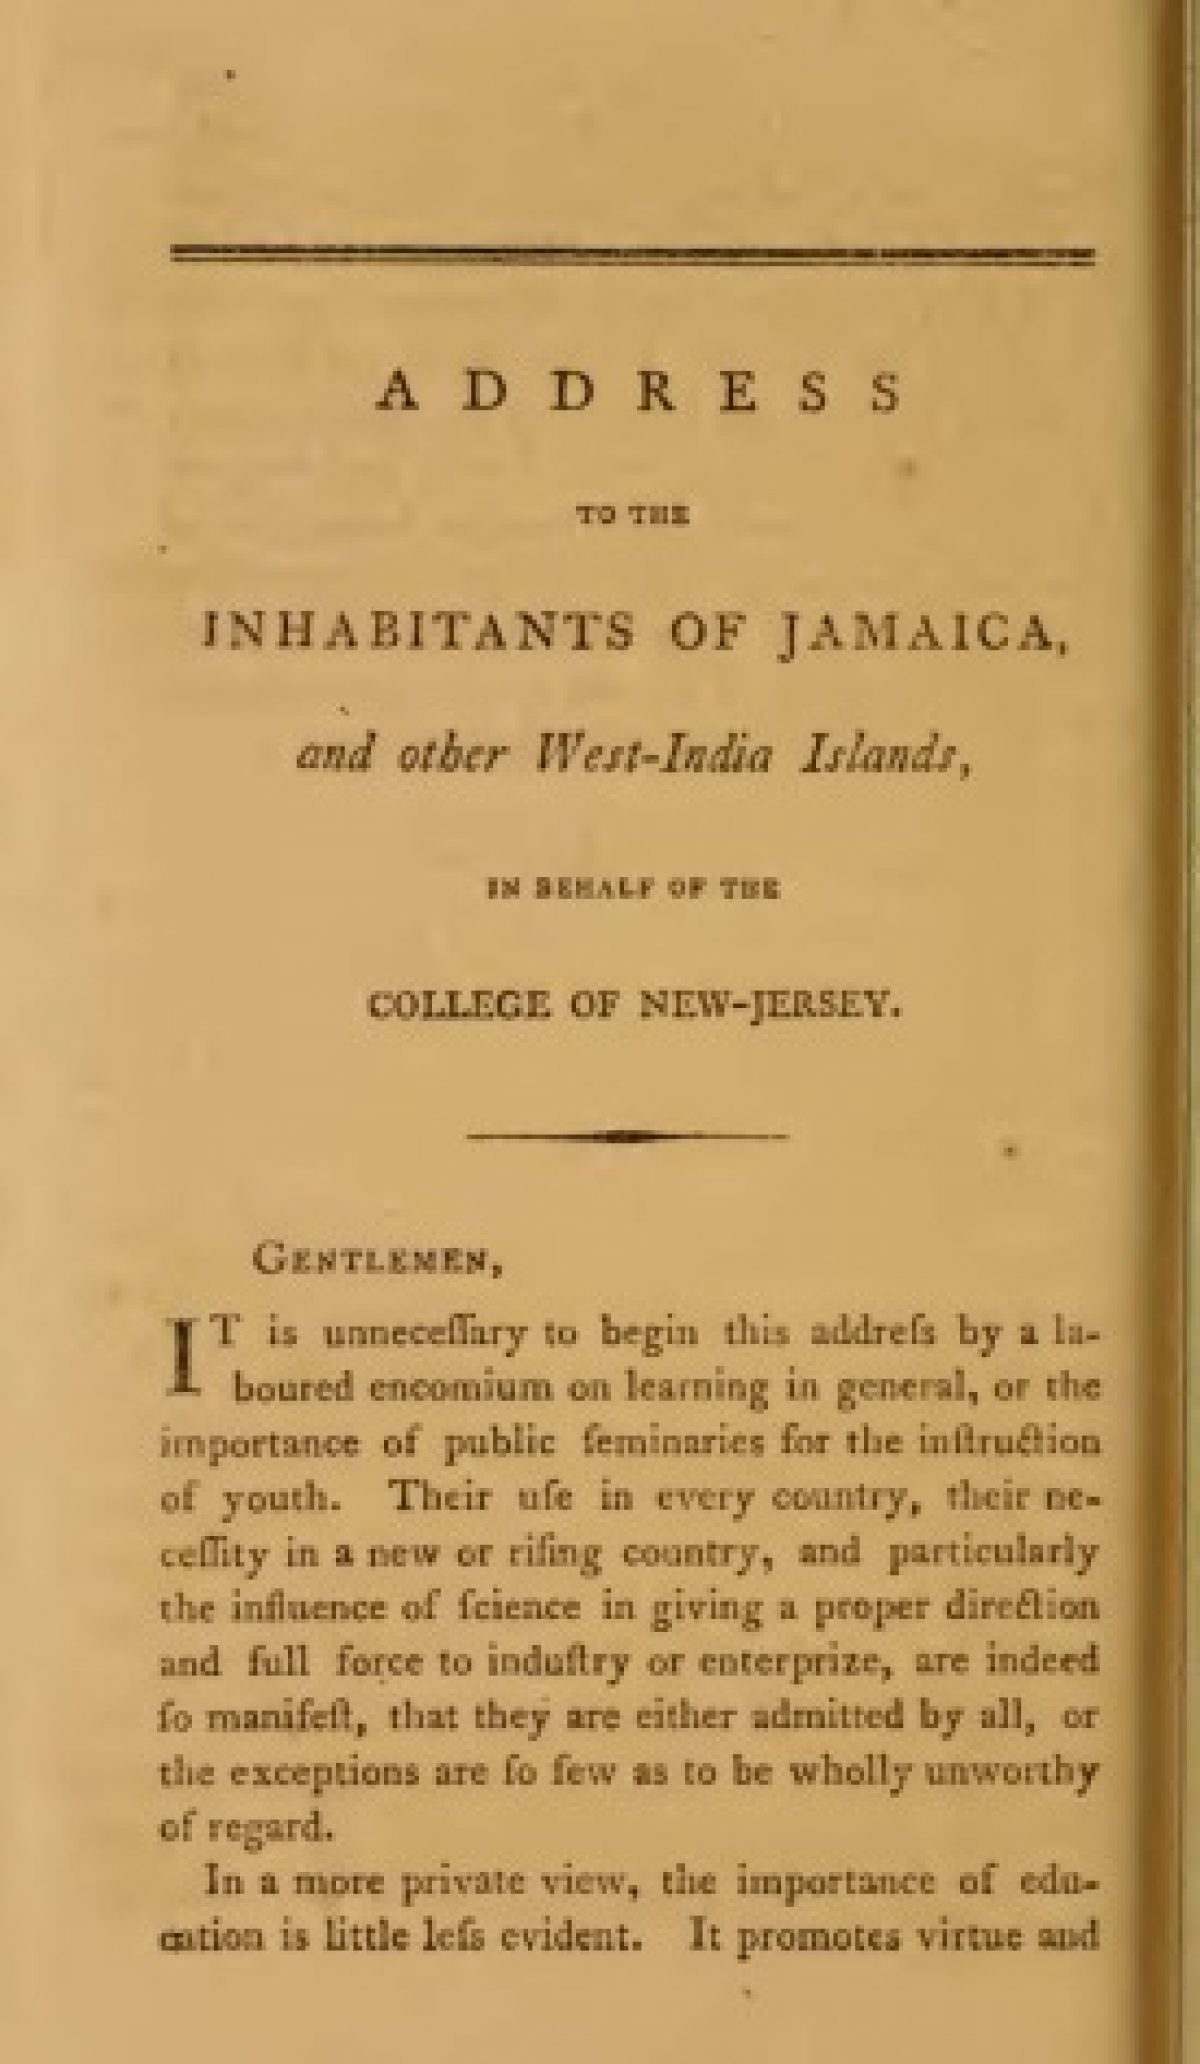 Address To The Inhabitants Of Jamaica And Other West India Islands